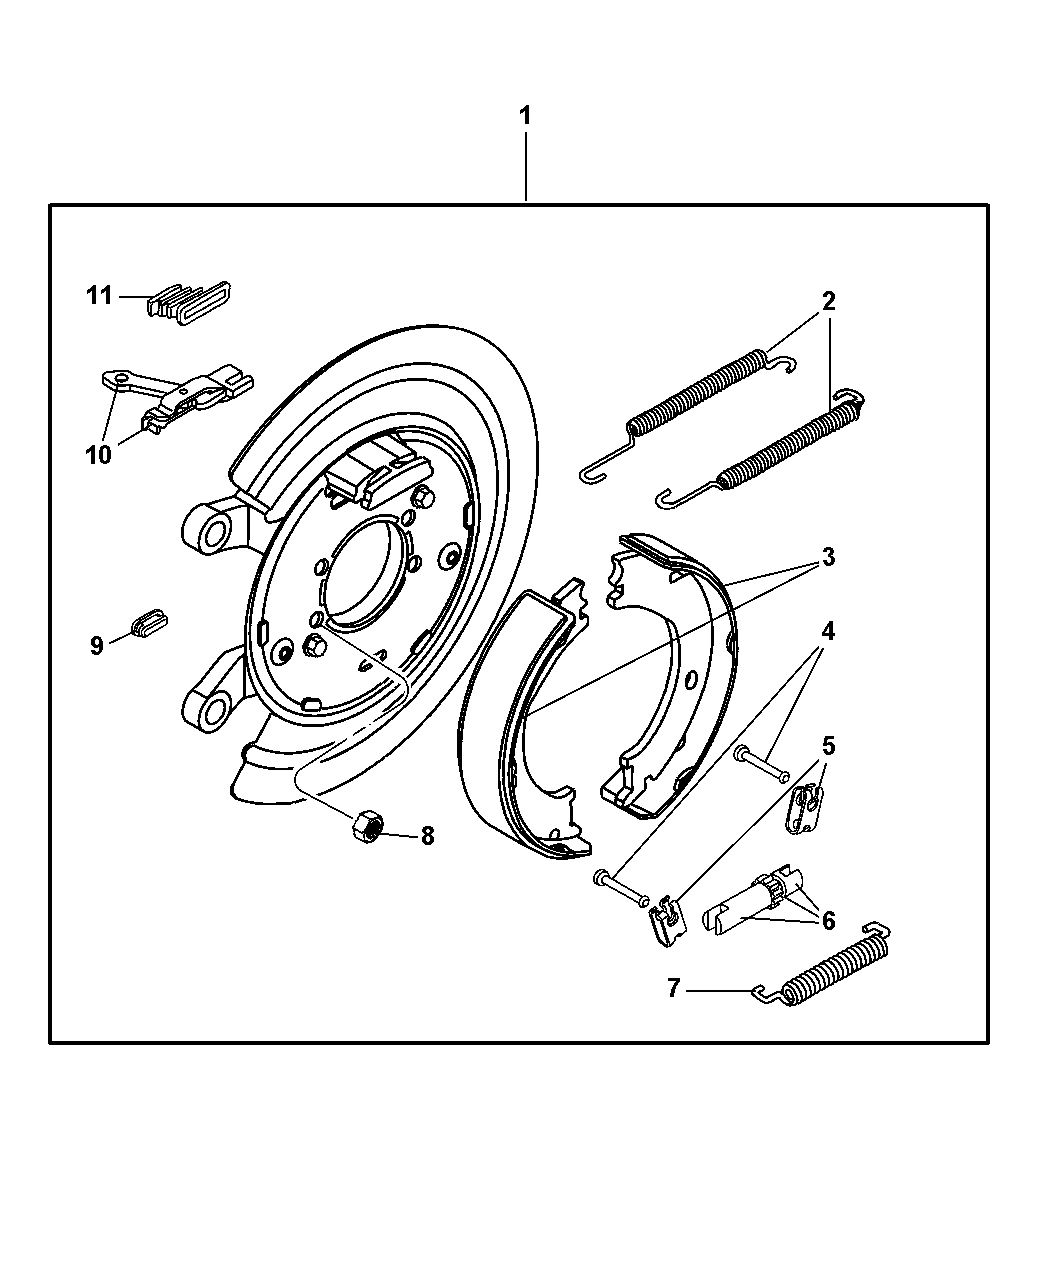 Parking Brake Assembly, Rear, Disc For 2003 Dodge Ram 1500 pertaining to 2003 Dodge Ram 1500 Parts Diagram